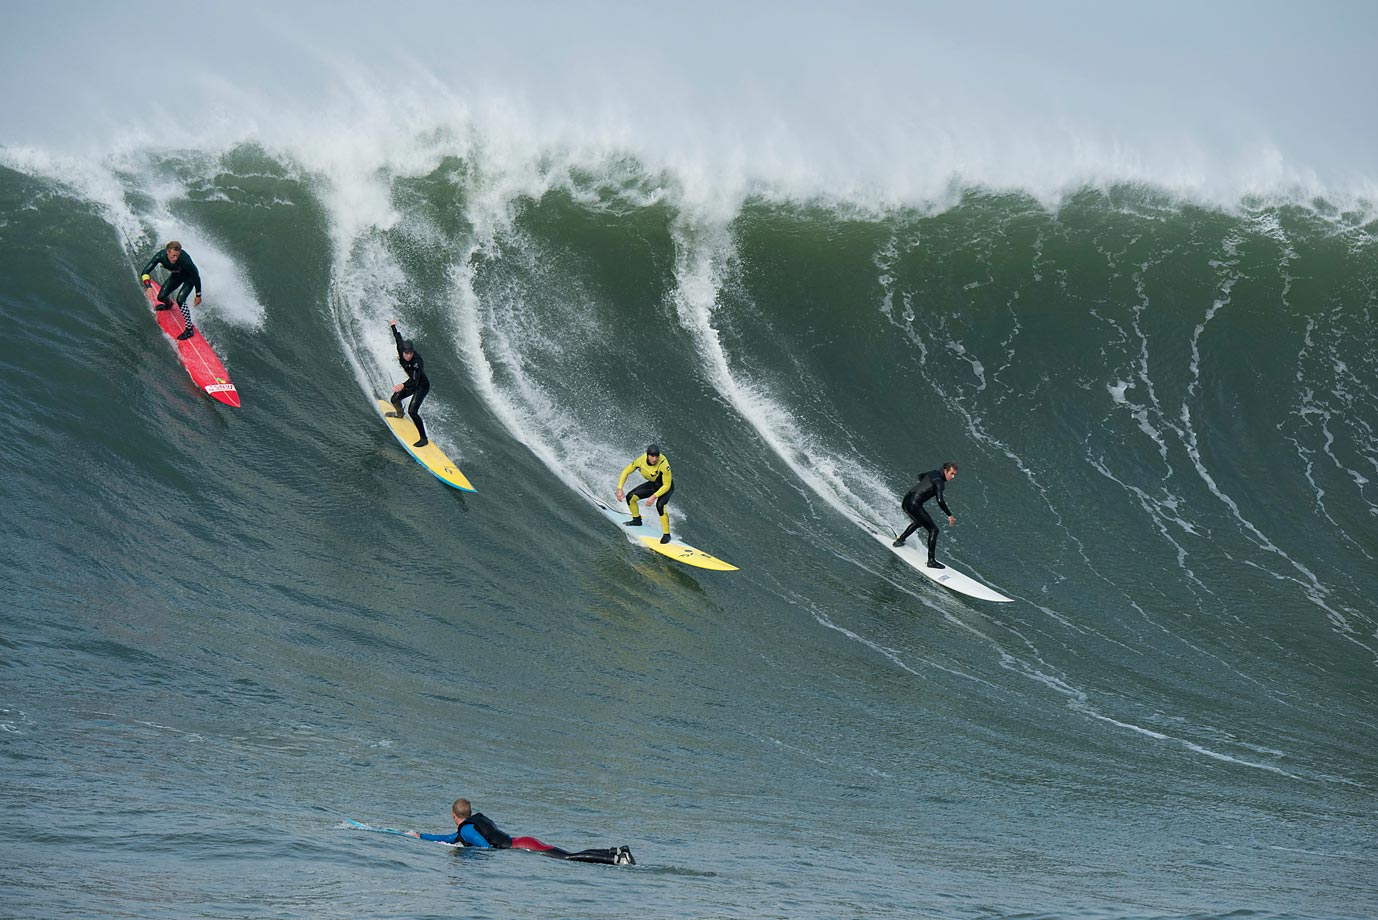 More than 65 of the world's top big wave surfers descended on Half Moon Bay, Calif., to ride the fabled Mavericks big wave. Very few riders become big wave surfers; and of those, only a select few are willing to risk the hazardous, sometimes deadly conditions at Mavericks.